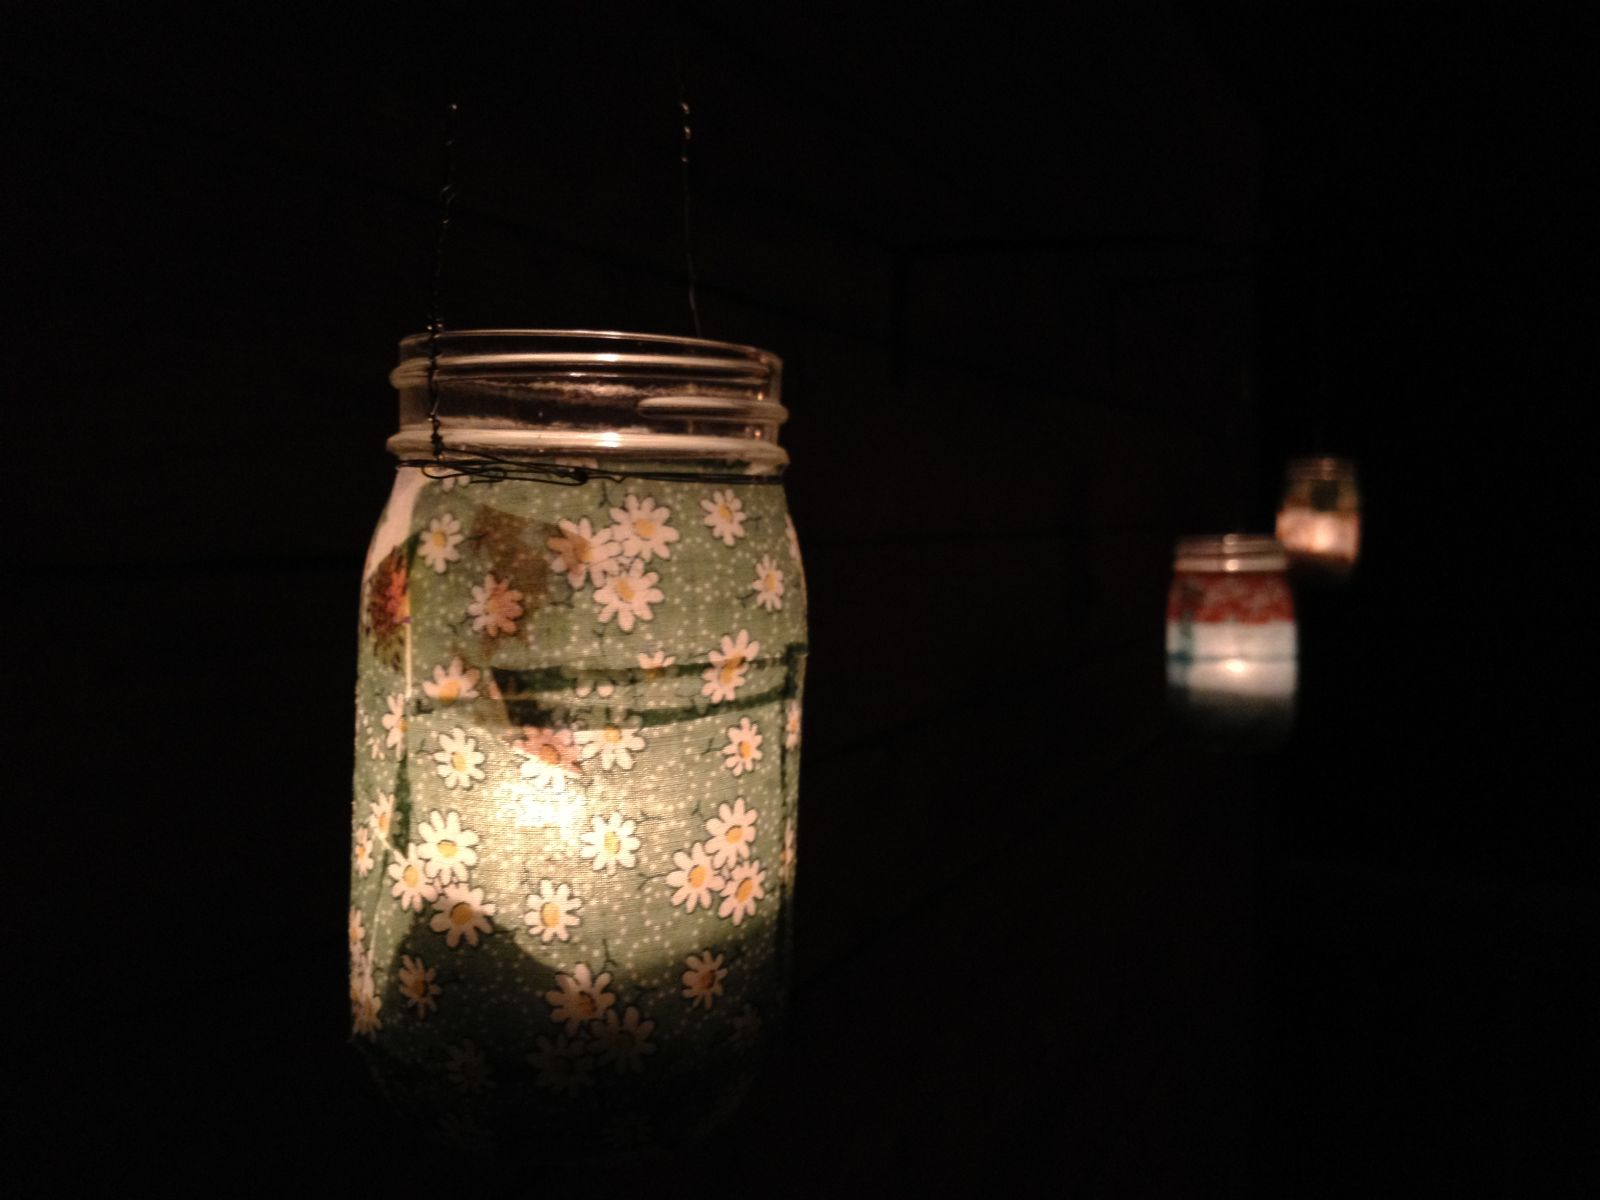 summer lanterns lit up